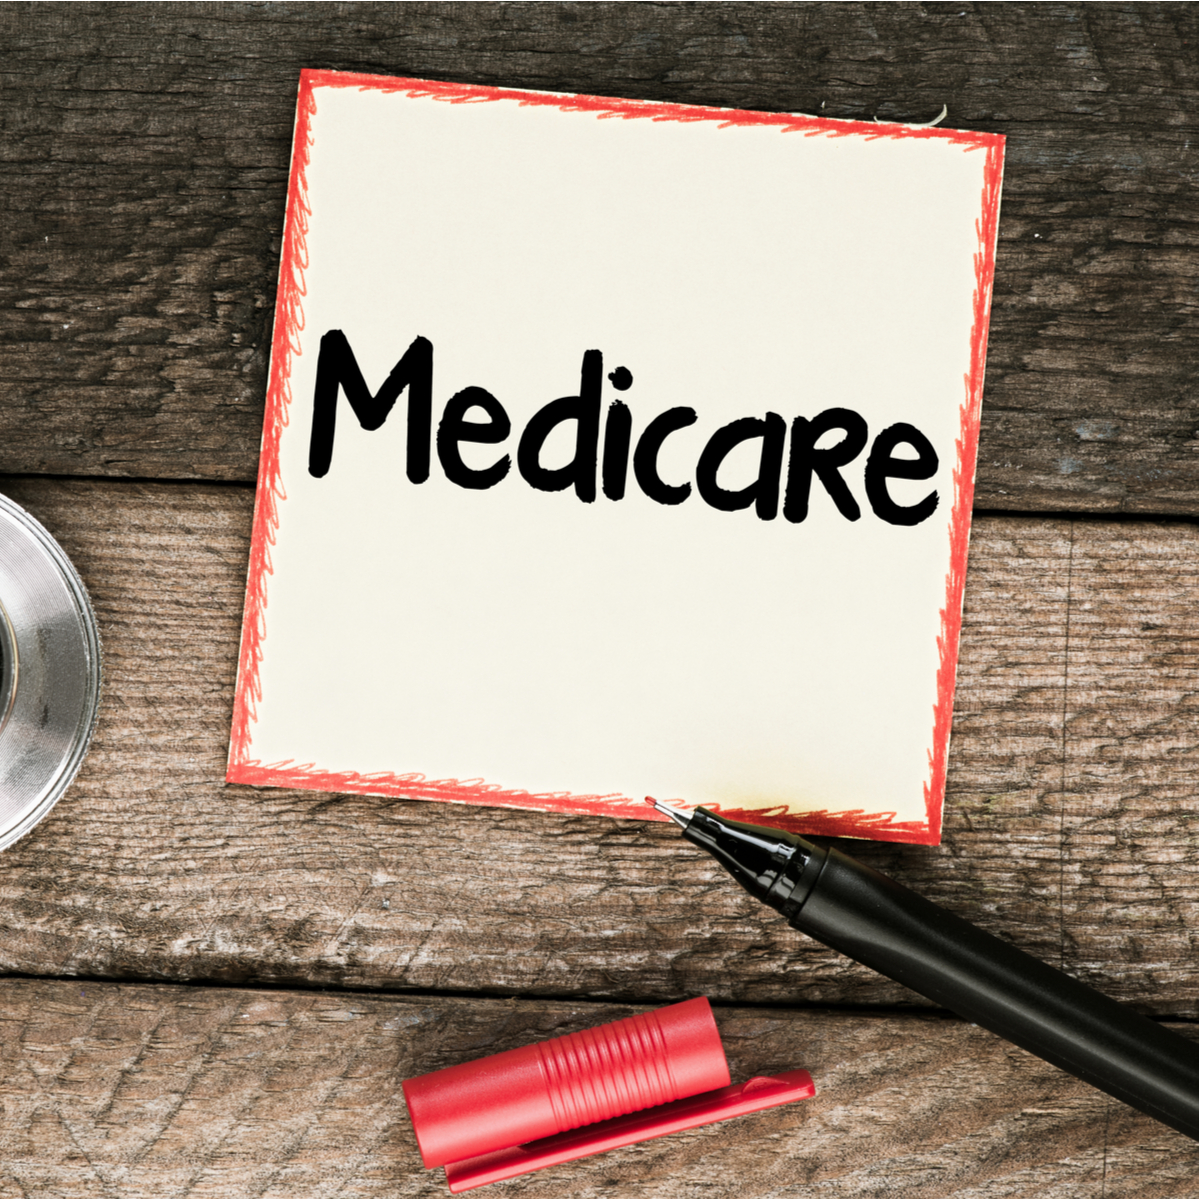 Safeguard Your Health With A Medicare Supplement Plan